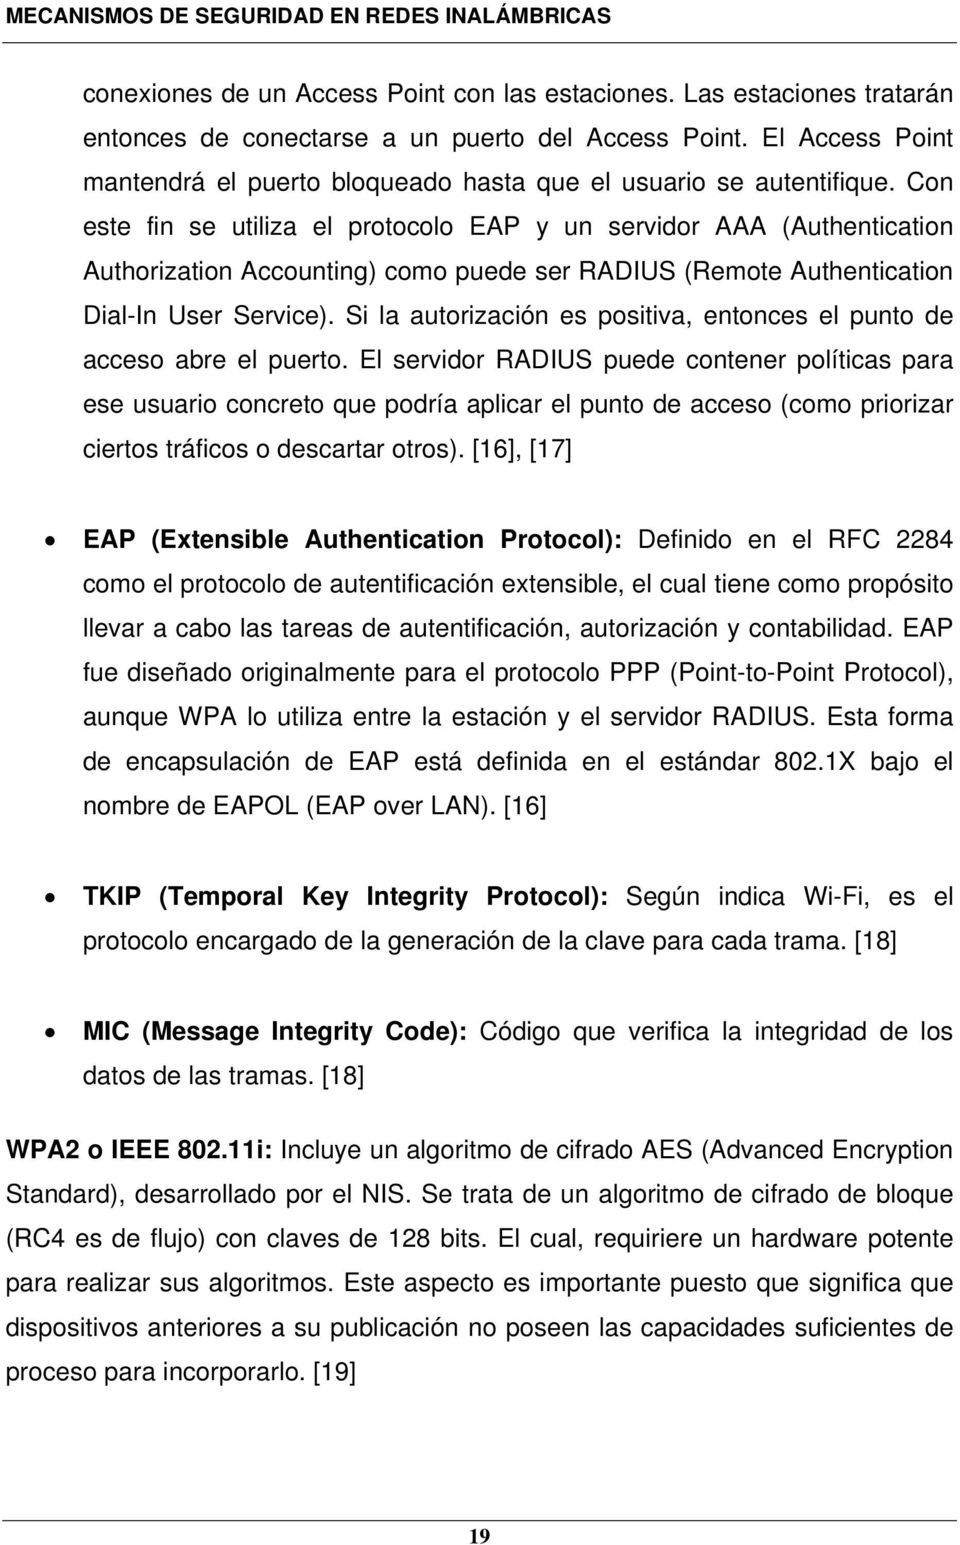 Con este fin se utiliza el protocolo EAP y un servidor AAA (Authentication Authorization Accounting) como puede ser RADIUS (Remote Authentication Dial-In User Service).